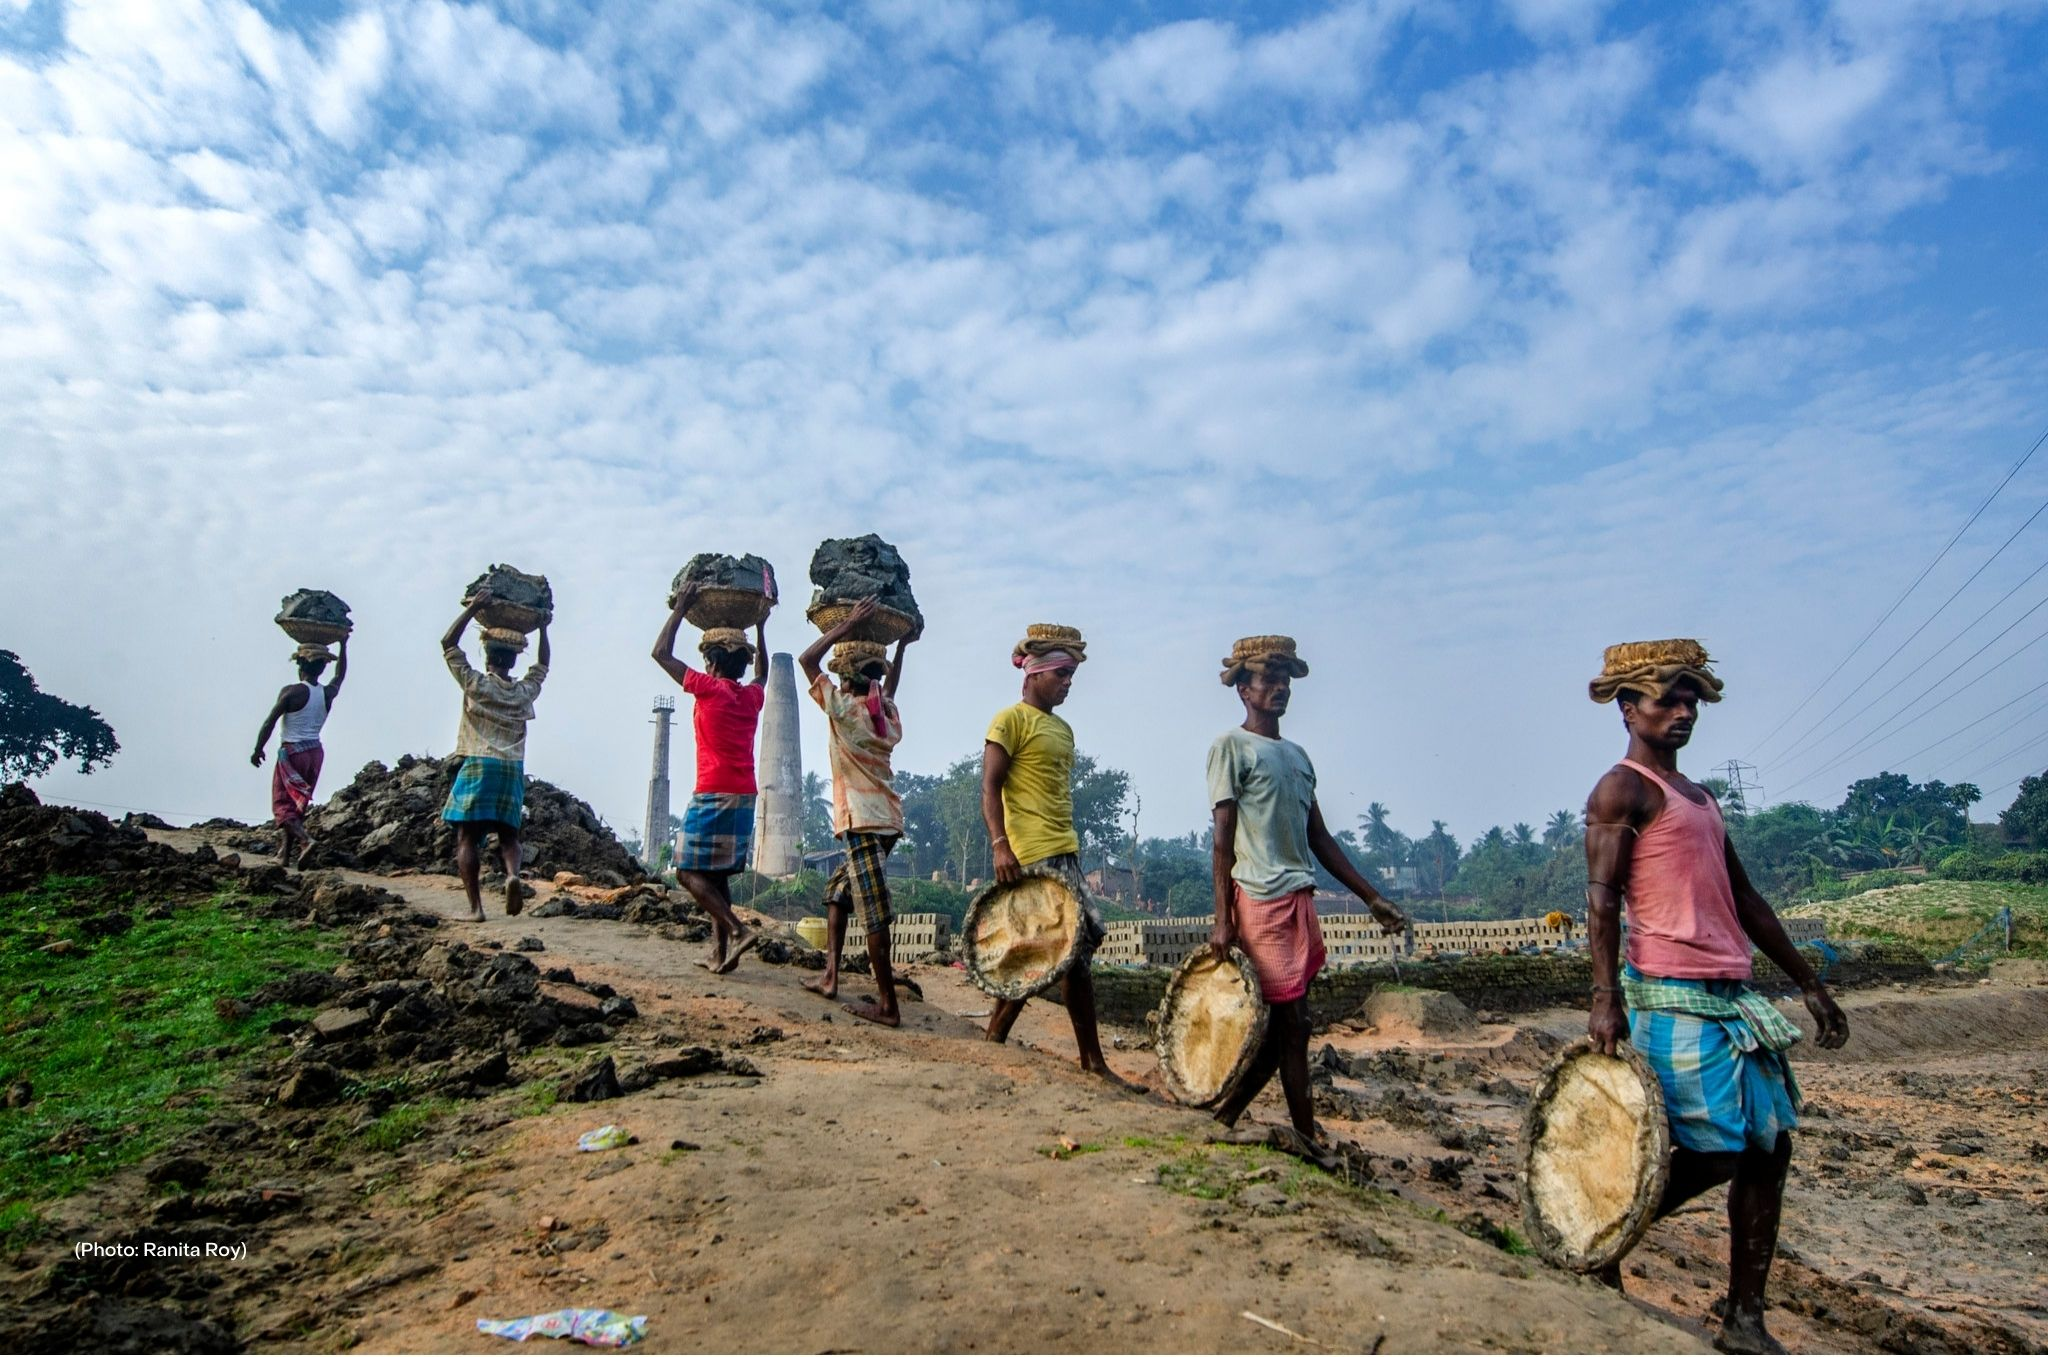 Indian men carry clay and materials to and from a brick kiln. Across India, traffickers force entire families to work to pay off debts, also known as debt bondage. Conditions at brick kilns are extreme; workers often do not have running water and endure excruciating temperatures at sites filled with dust and dangerous chemicals.